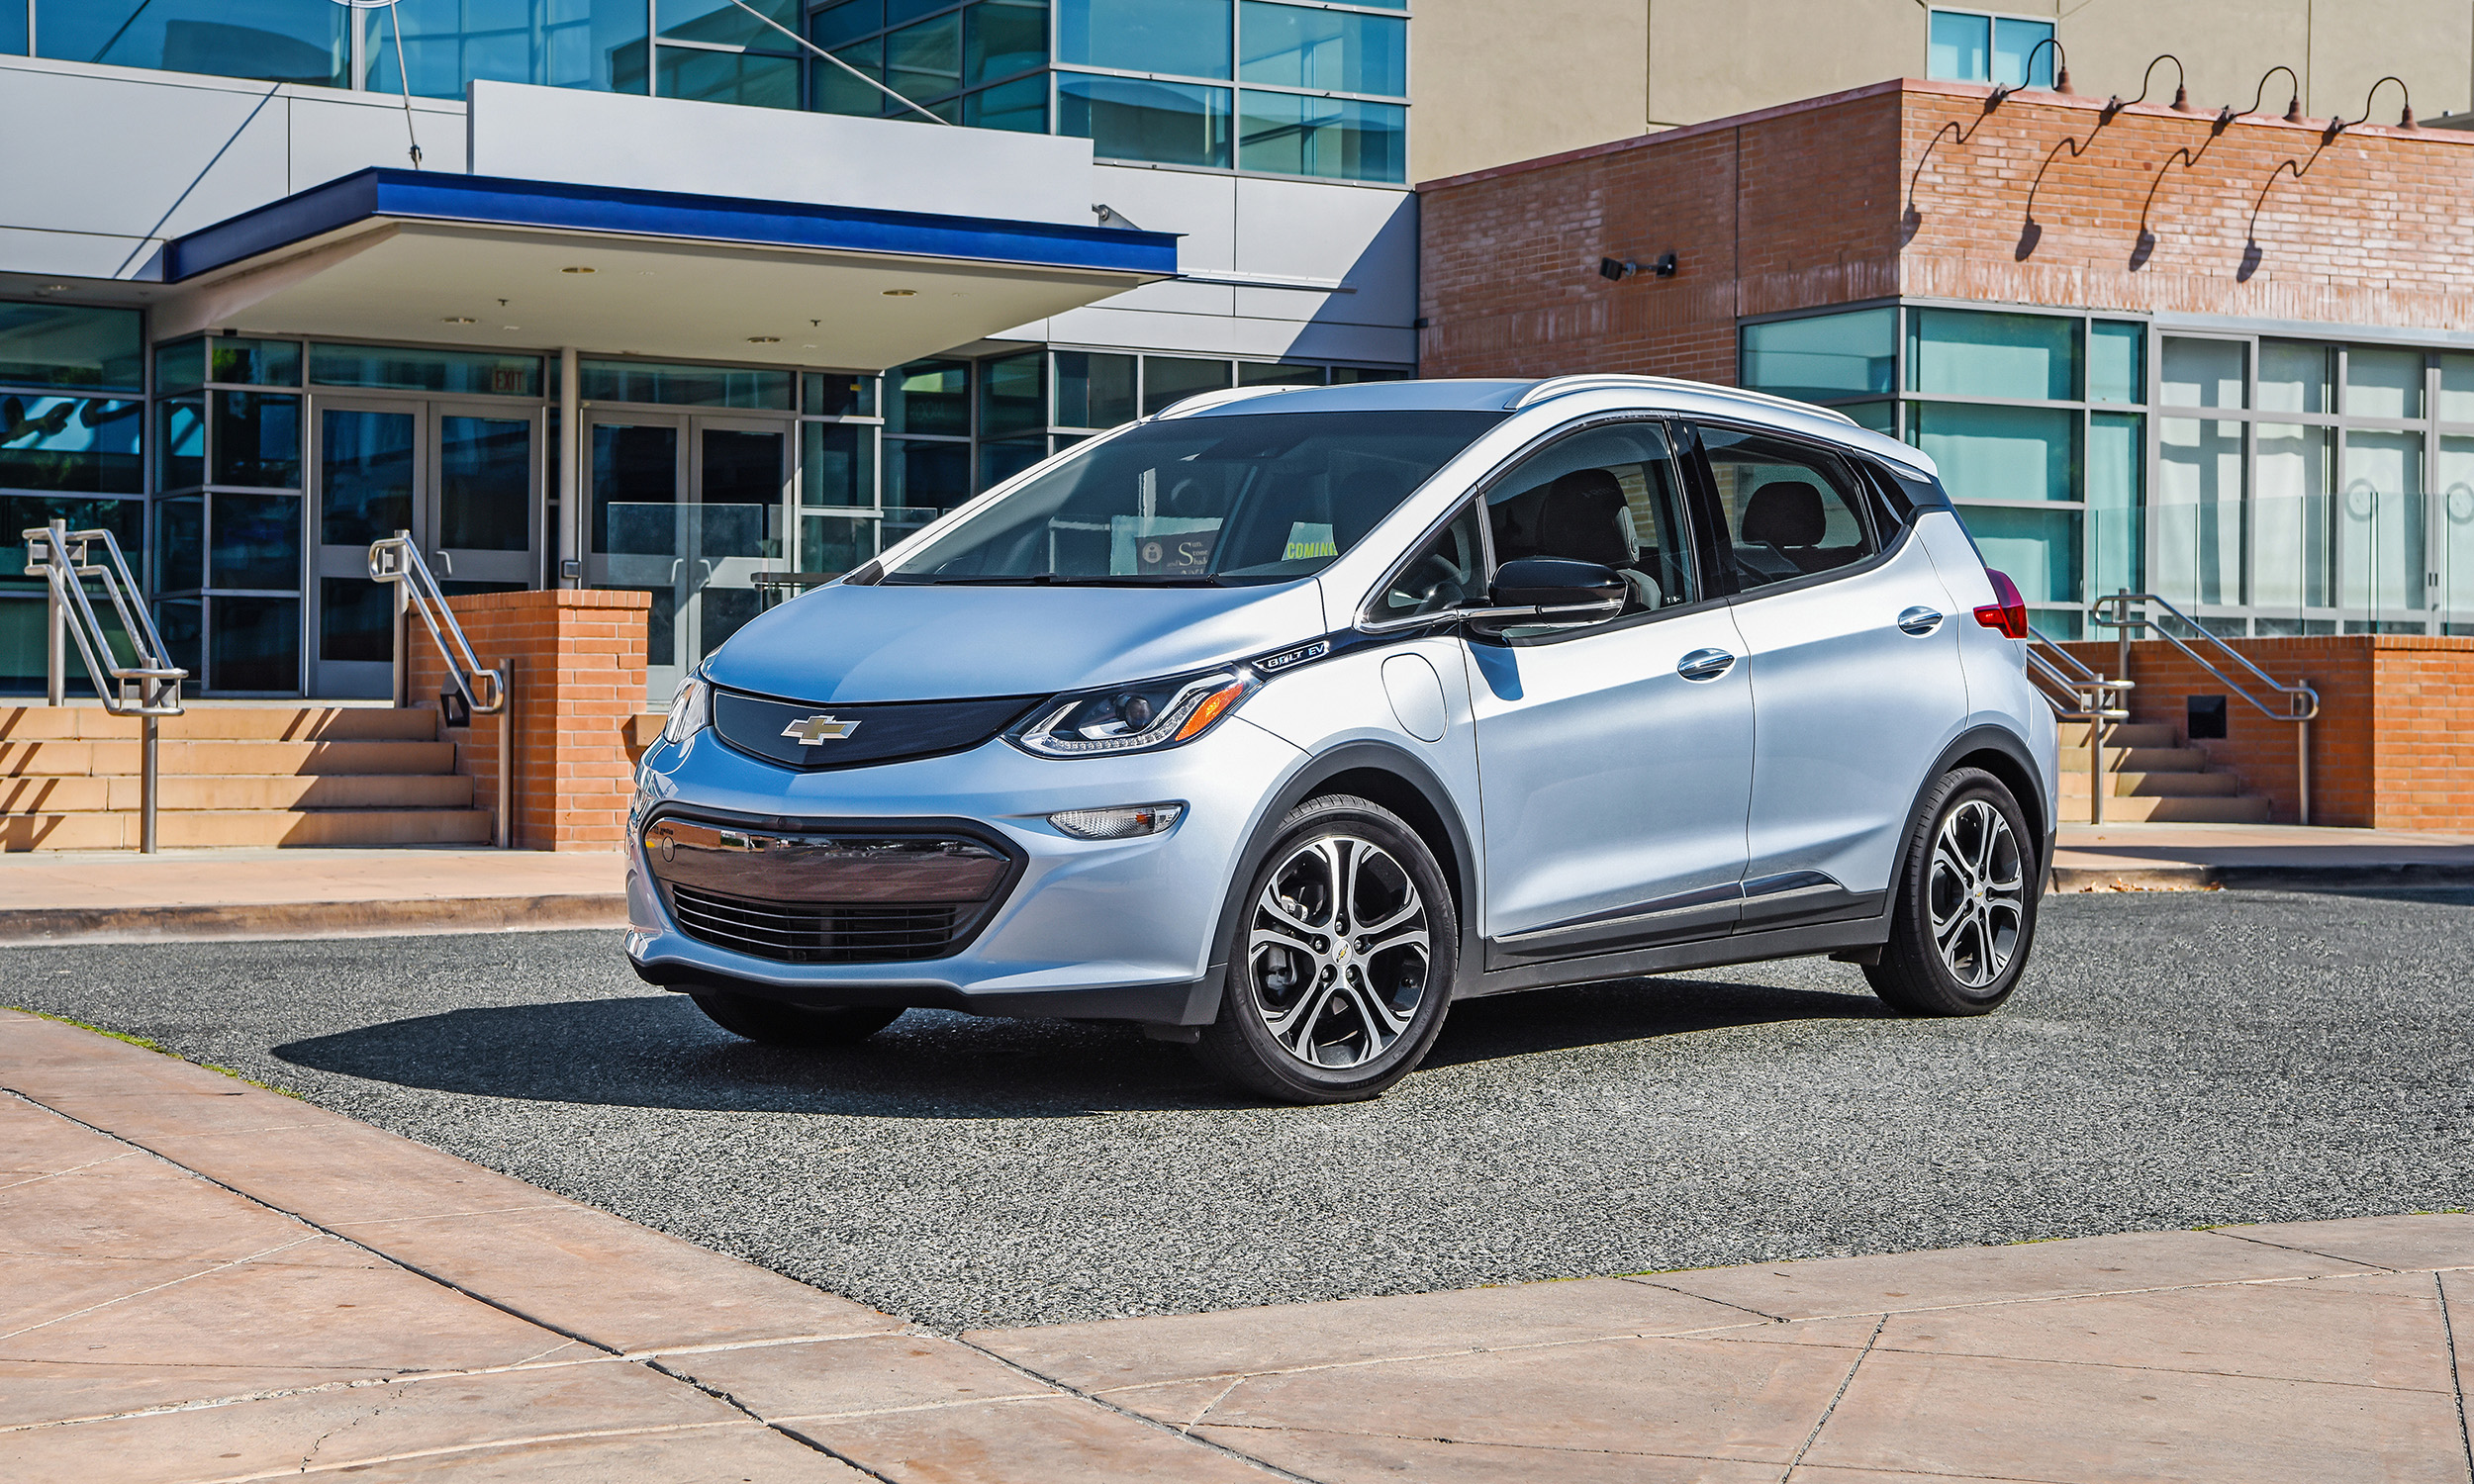 General Motors 2017 Chevrolet Bolt Ev